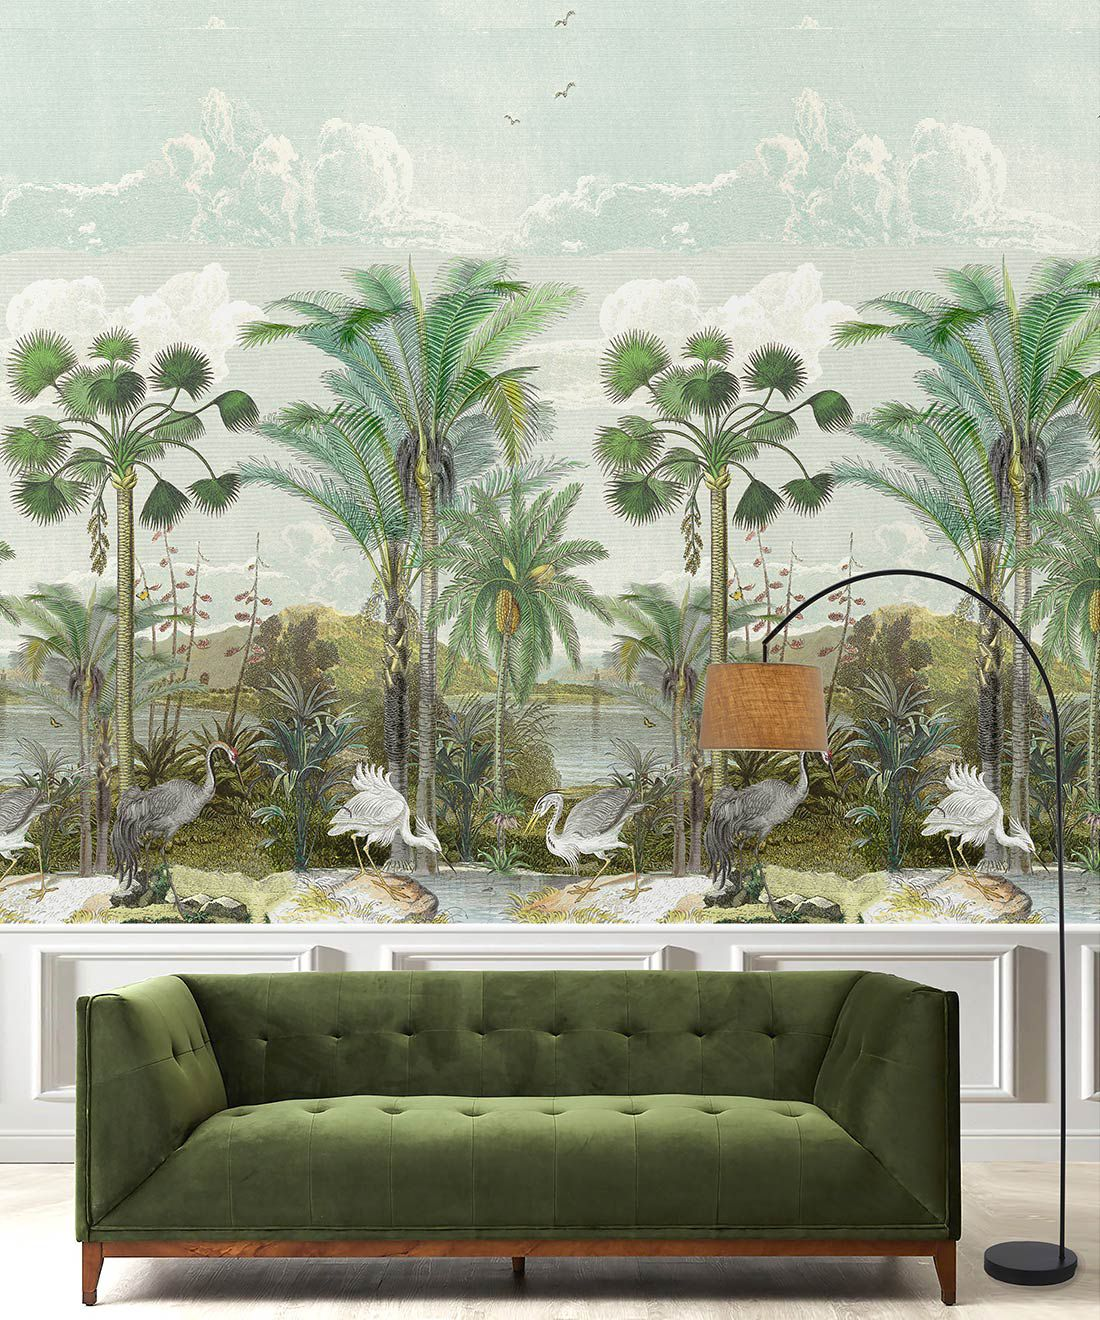 Indian Subcontinent Wallpaper Mural •Bethany Linz • Palm Tree Mural • Blue • Insitu